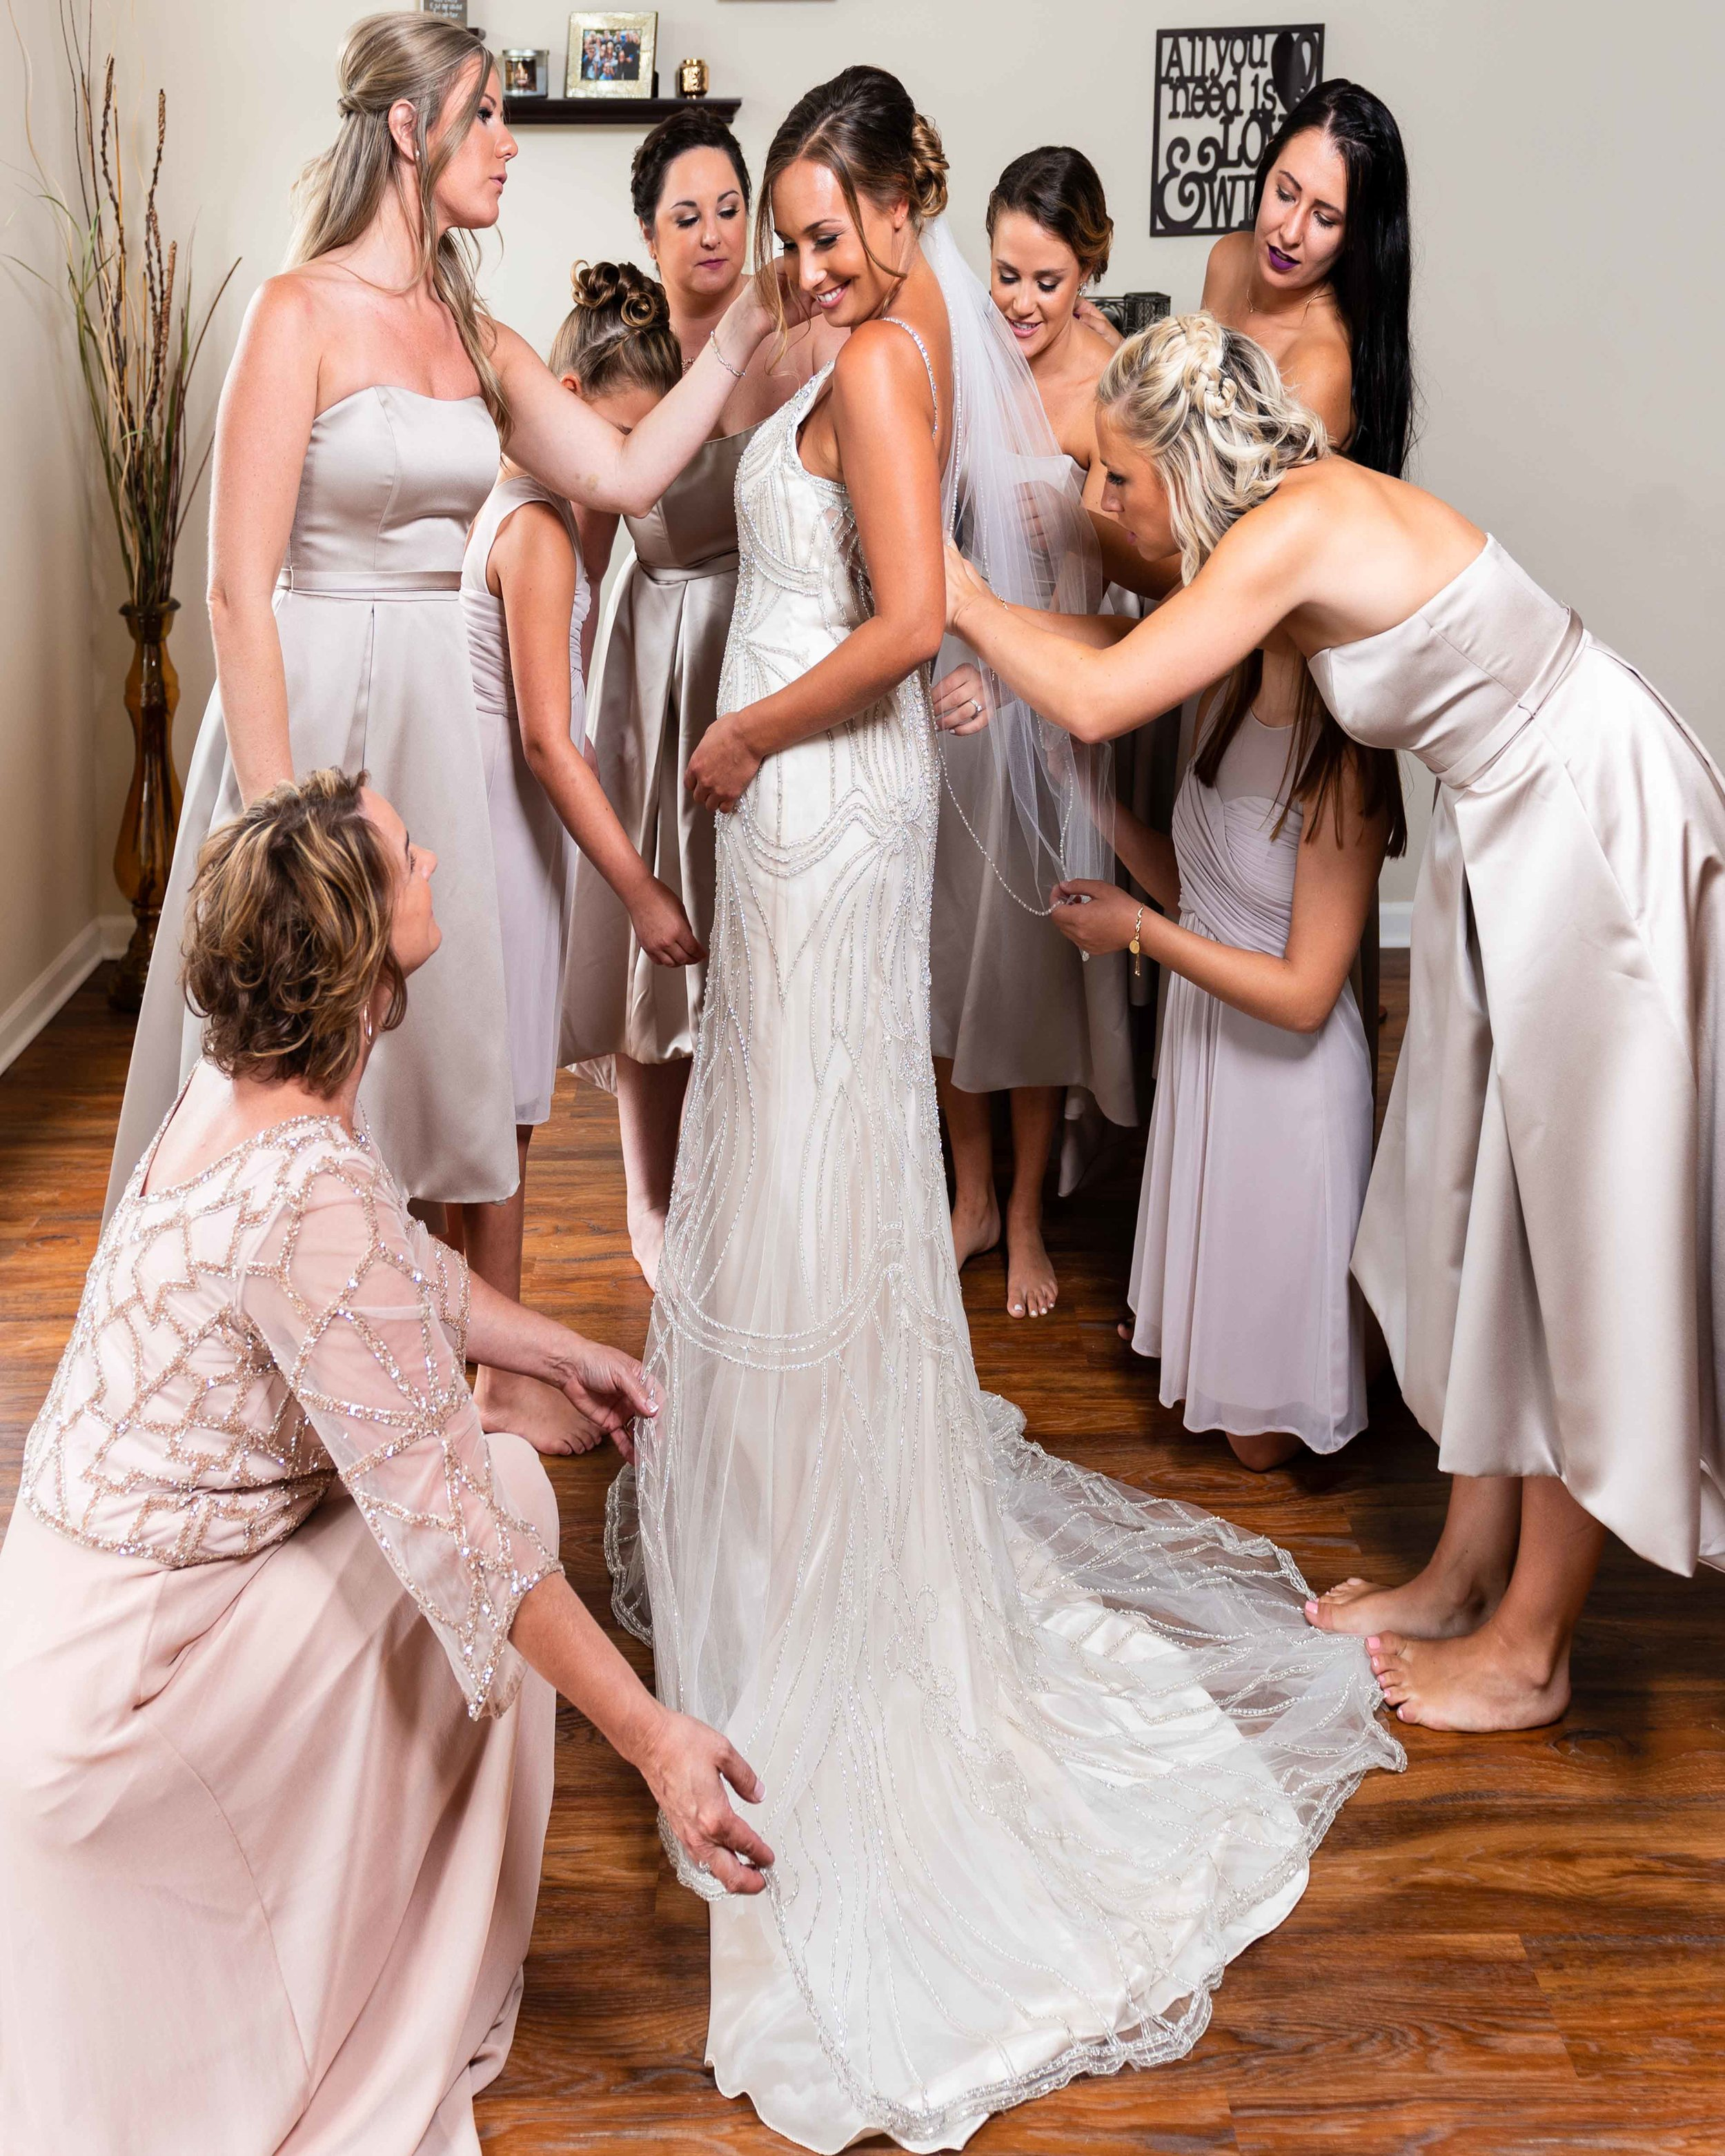 Bride-Getting-Ready-with-Bridesmaids-6.jpg